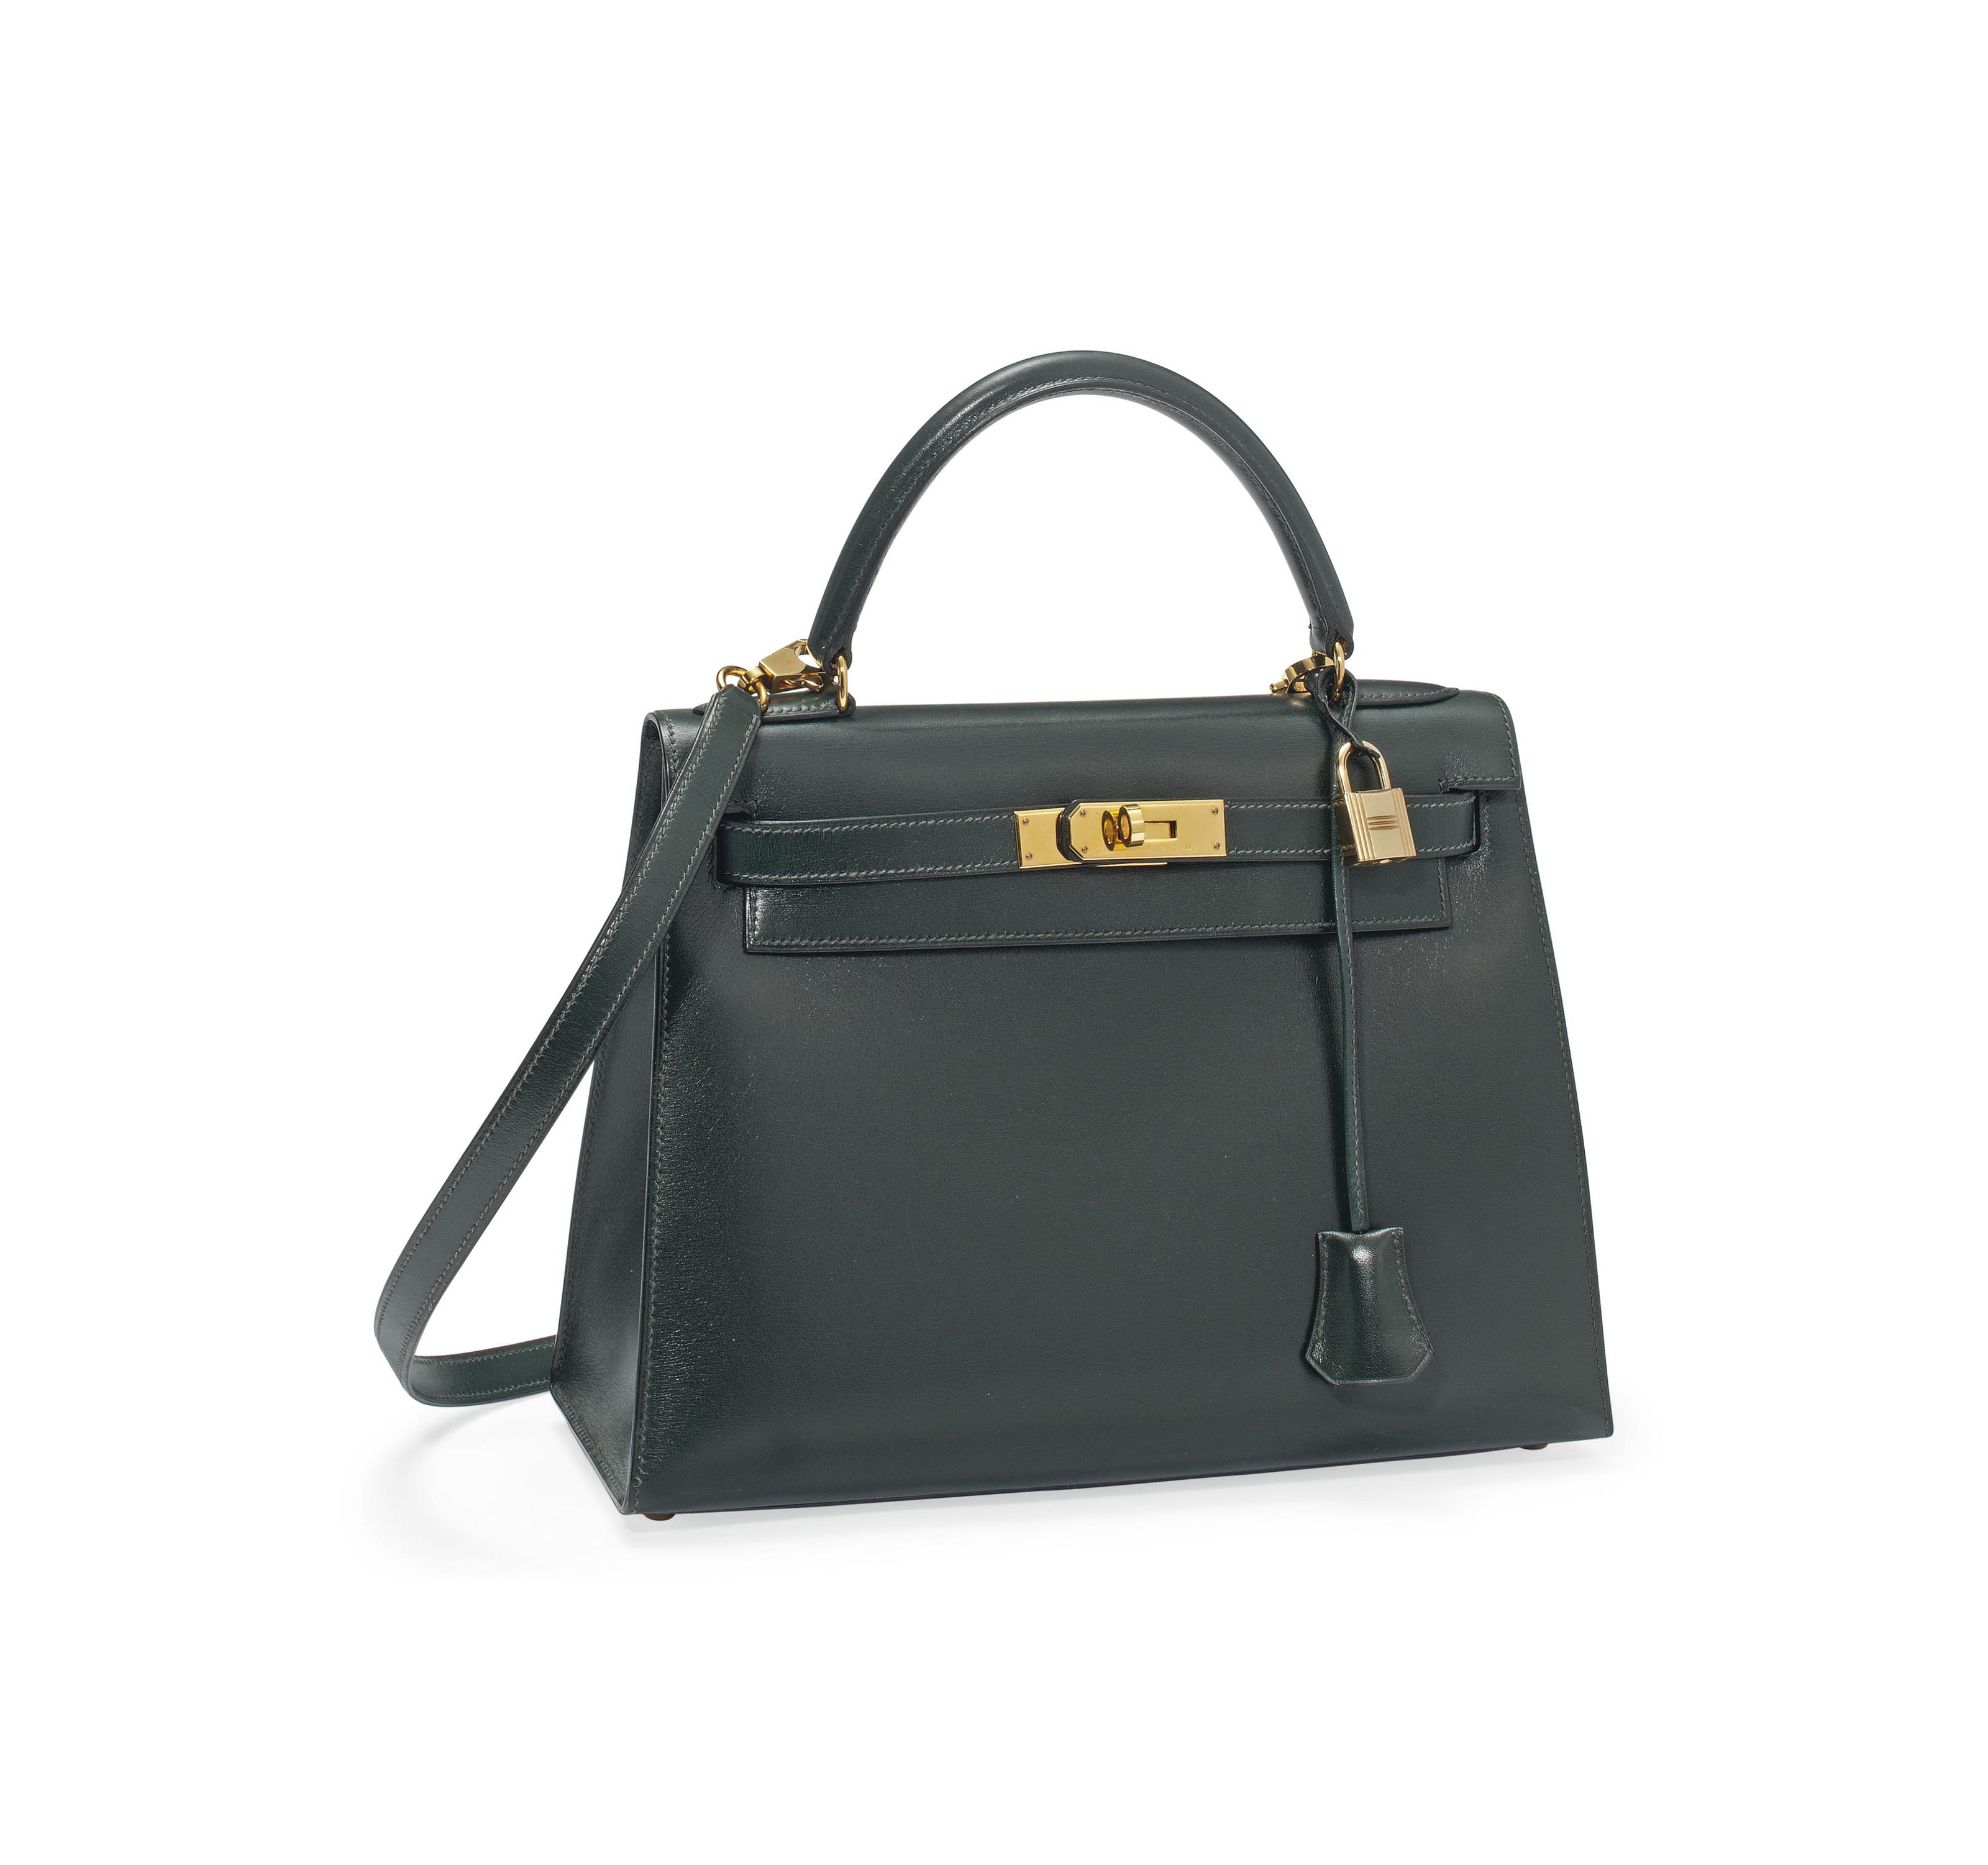 A FOREST GREEN BOX LEATHER 'KELLY' BAG